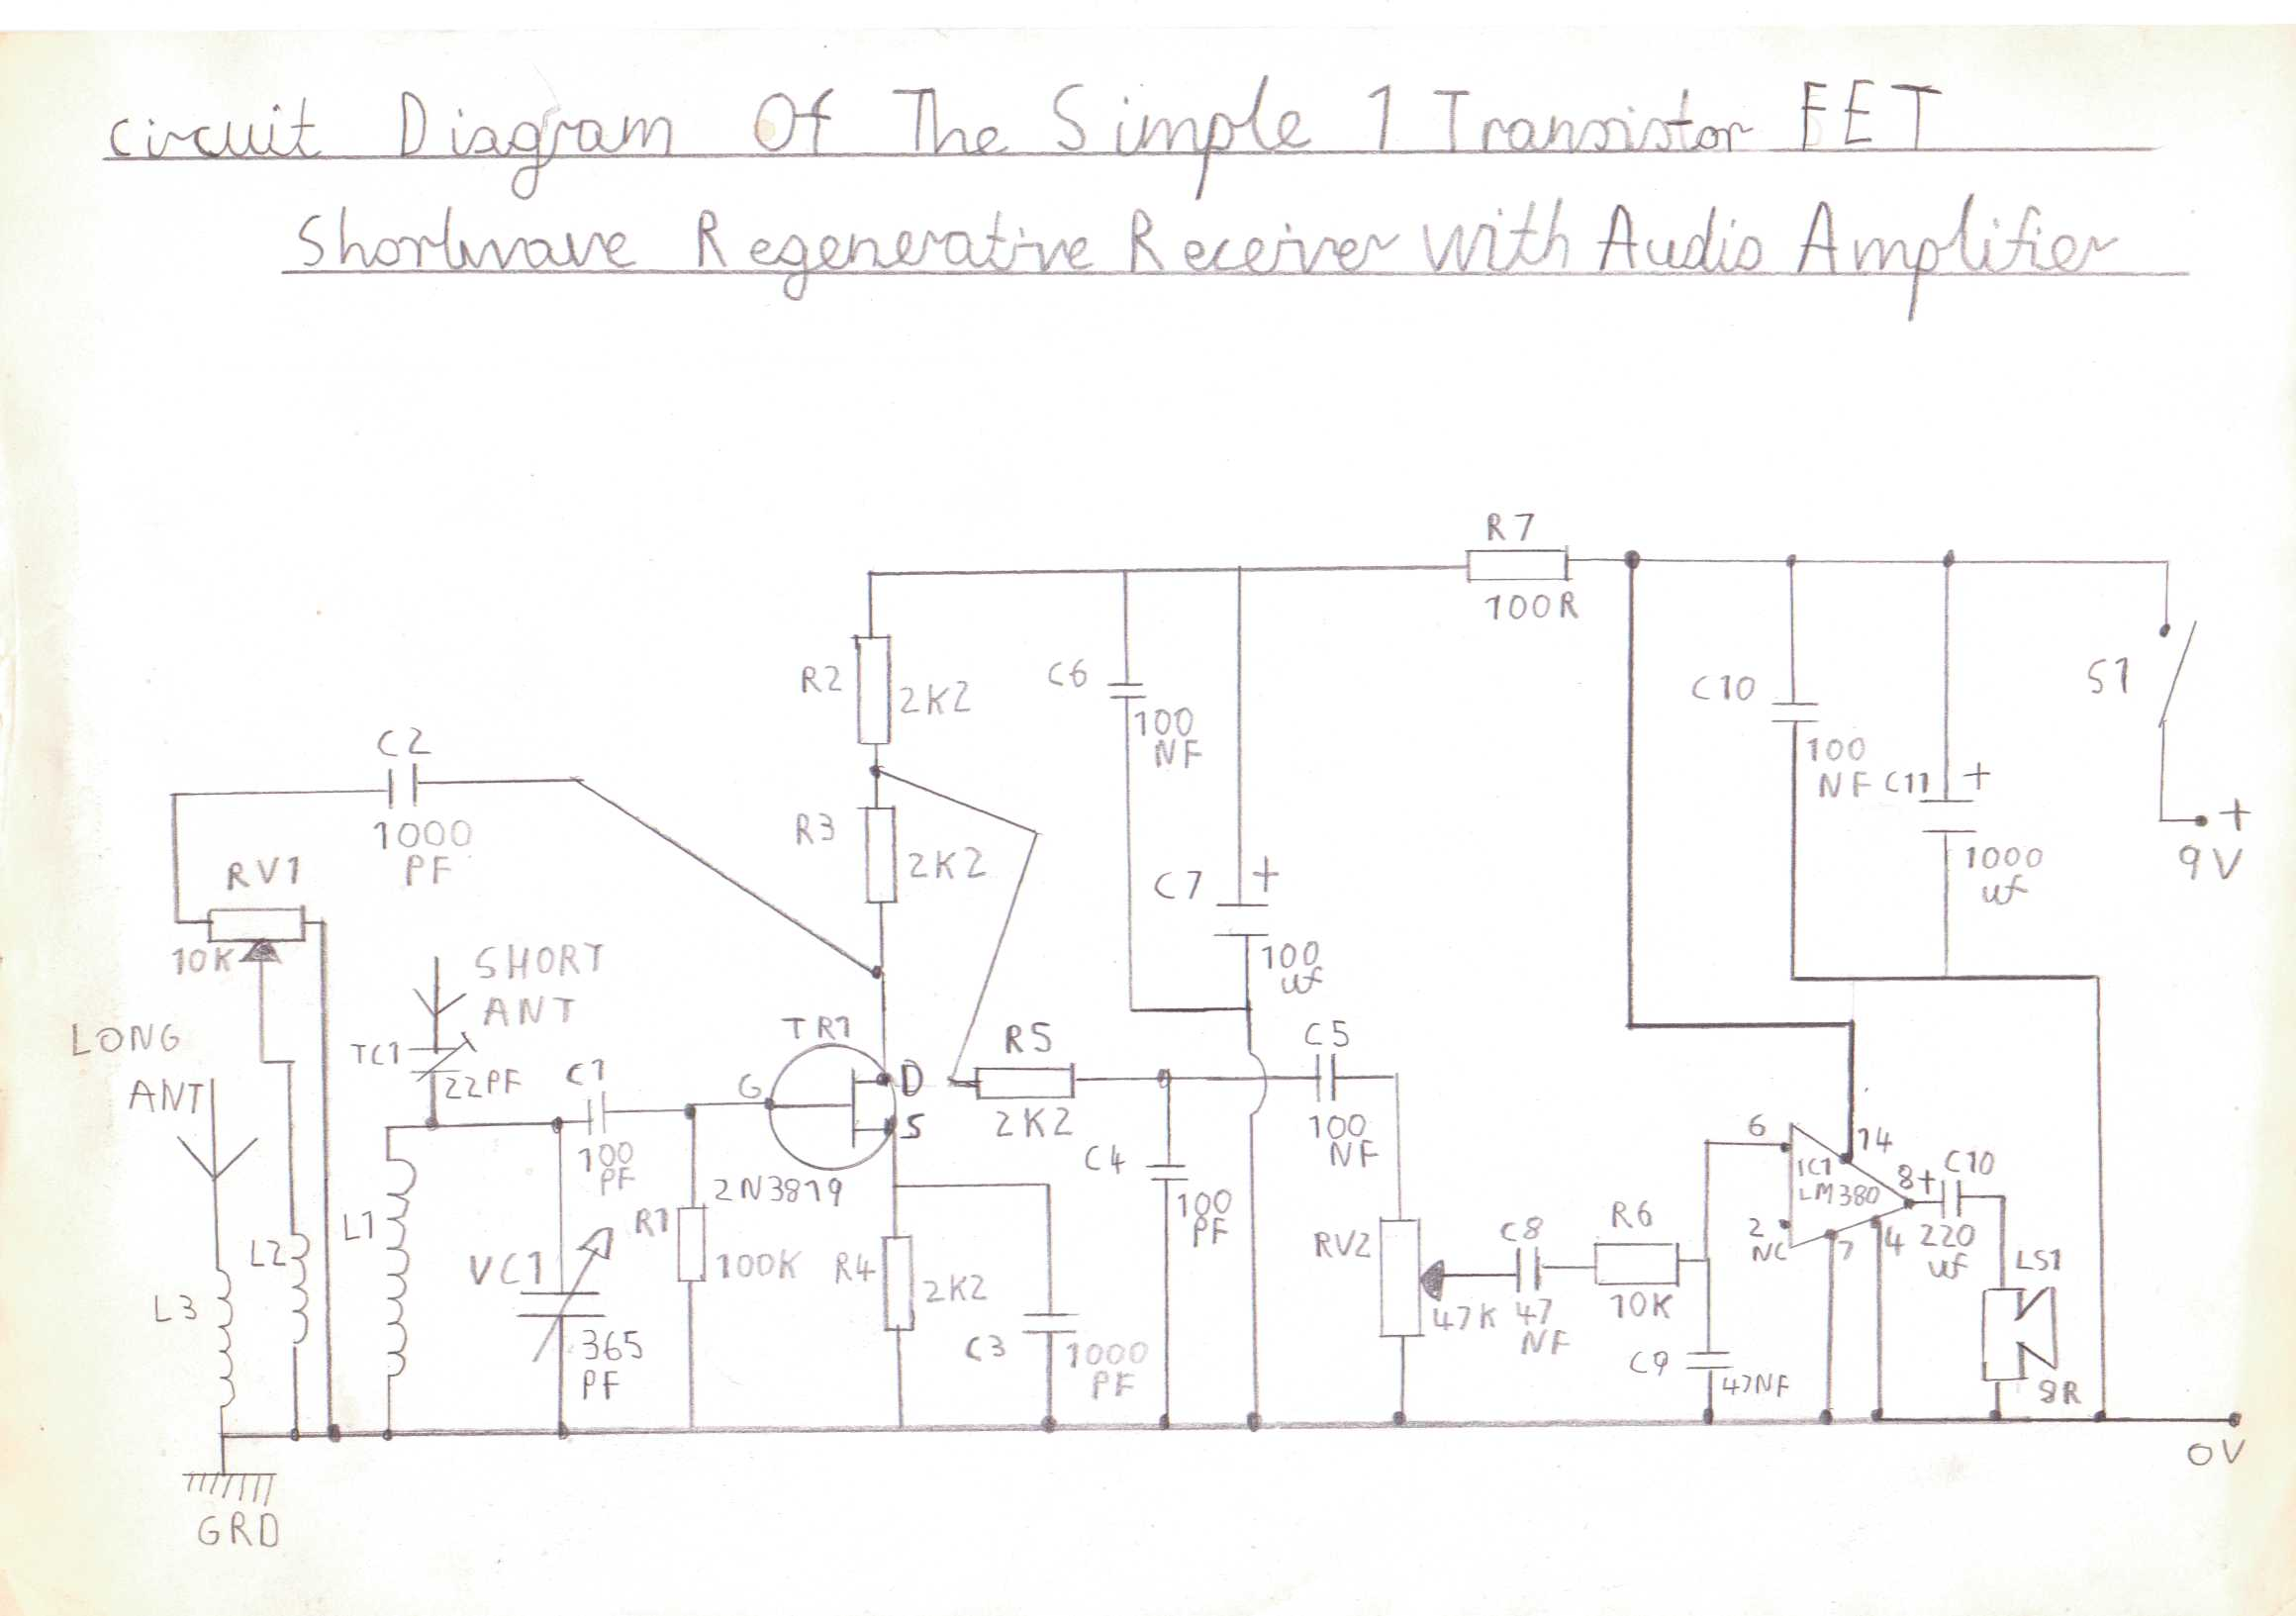 Progressive Crystal Set To Regenerative Receiver Using Safe 12v Ht Line Audio An Lm380 Amplifierchip Is Used In The Following Circuit Diagram Of 1 Transistor Fet Version Trf Shortwave With Amplifier